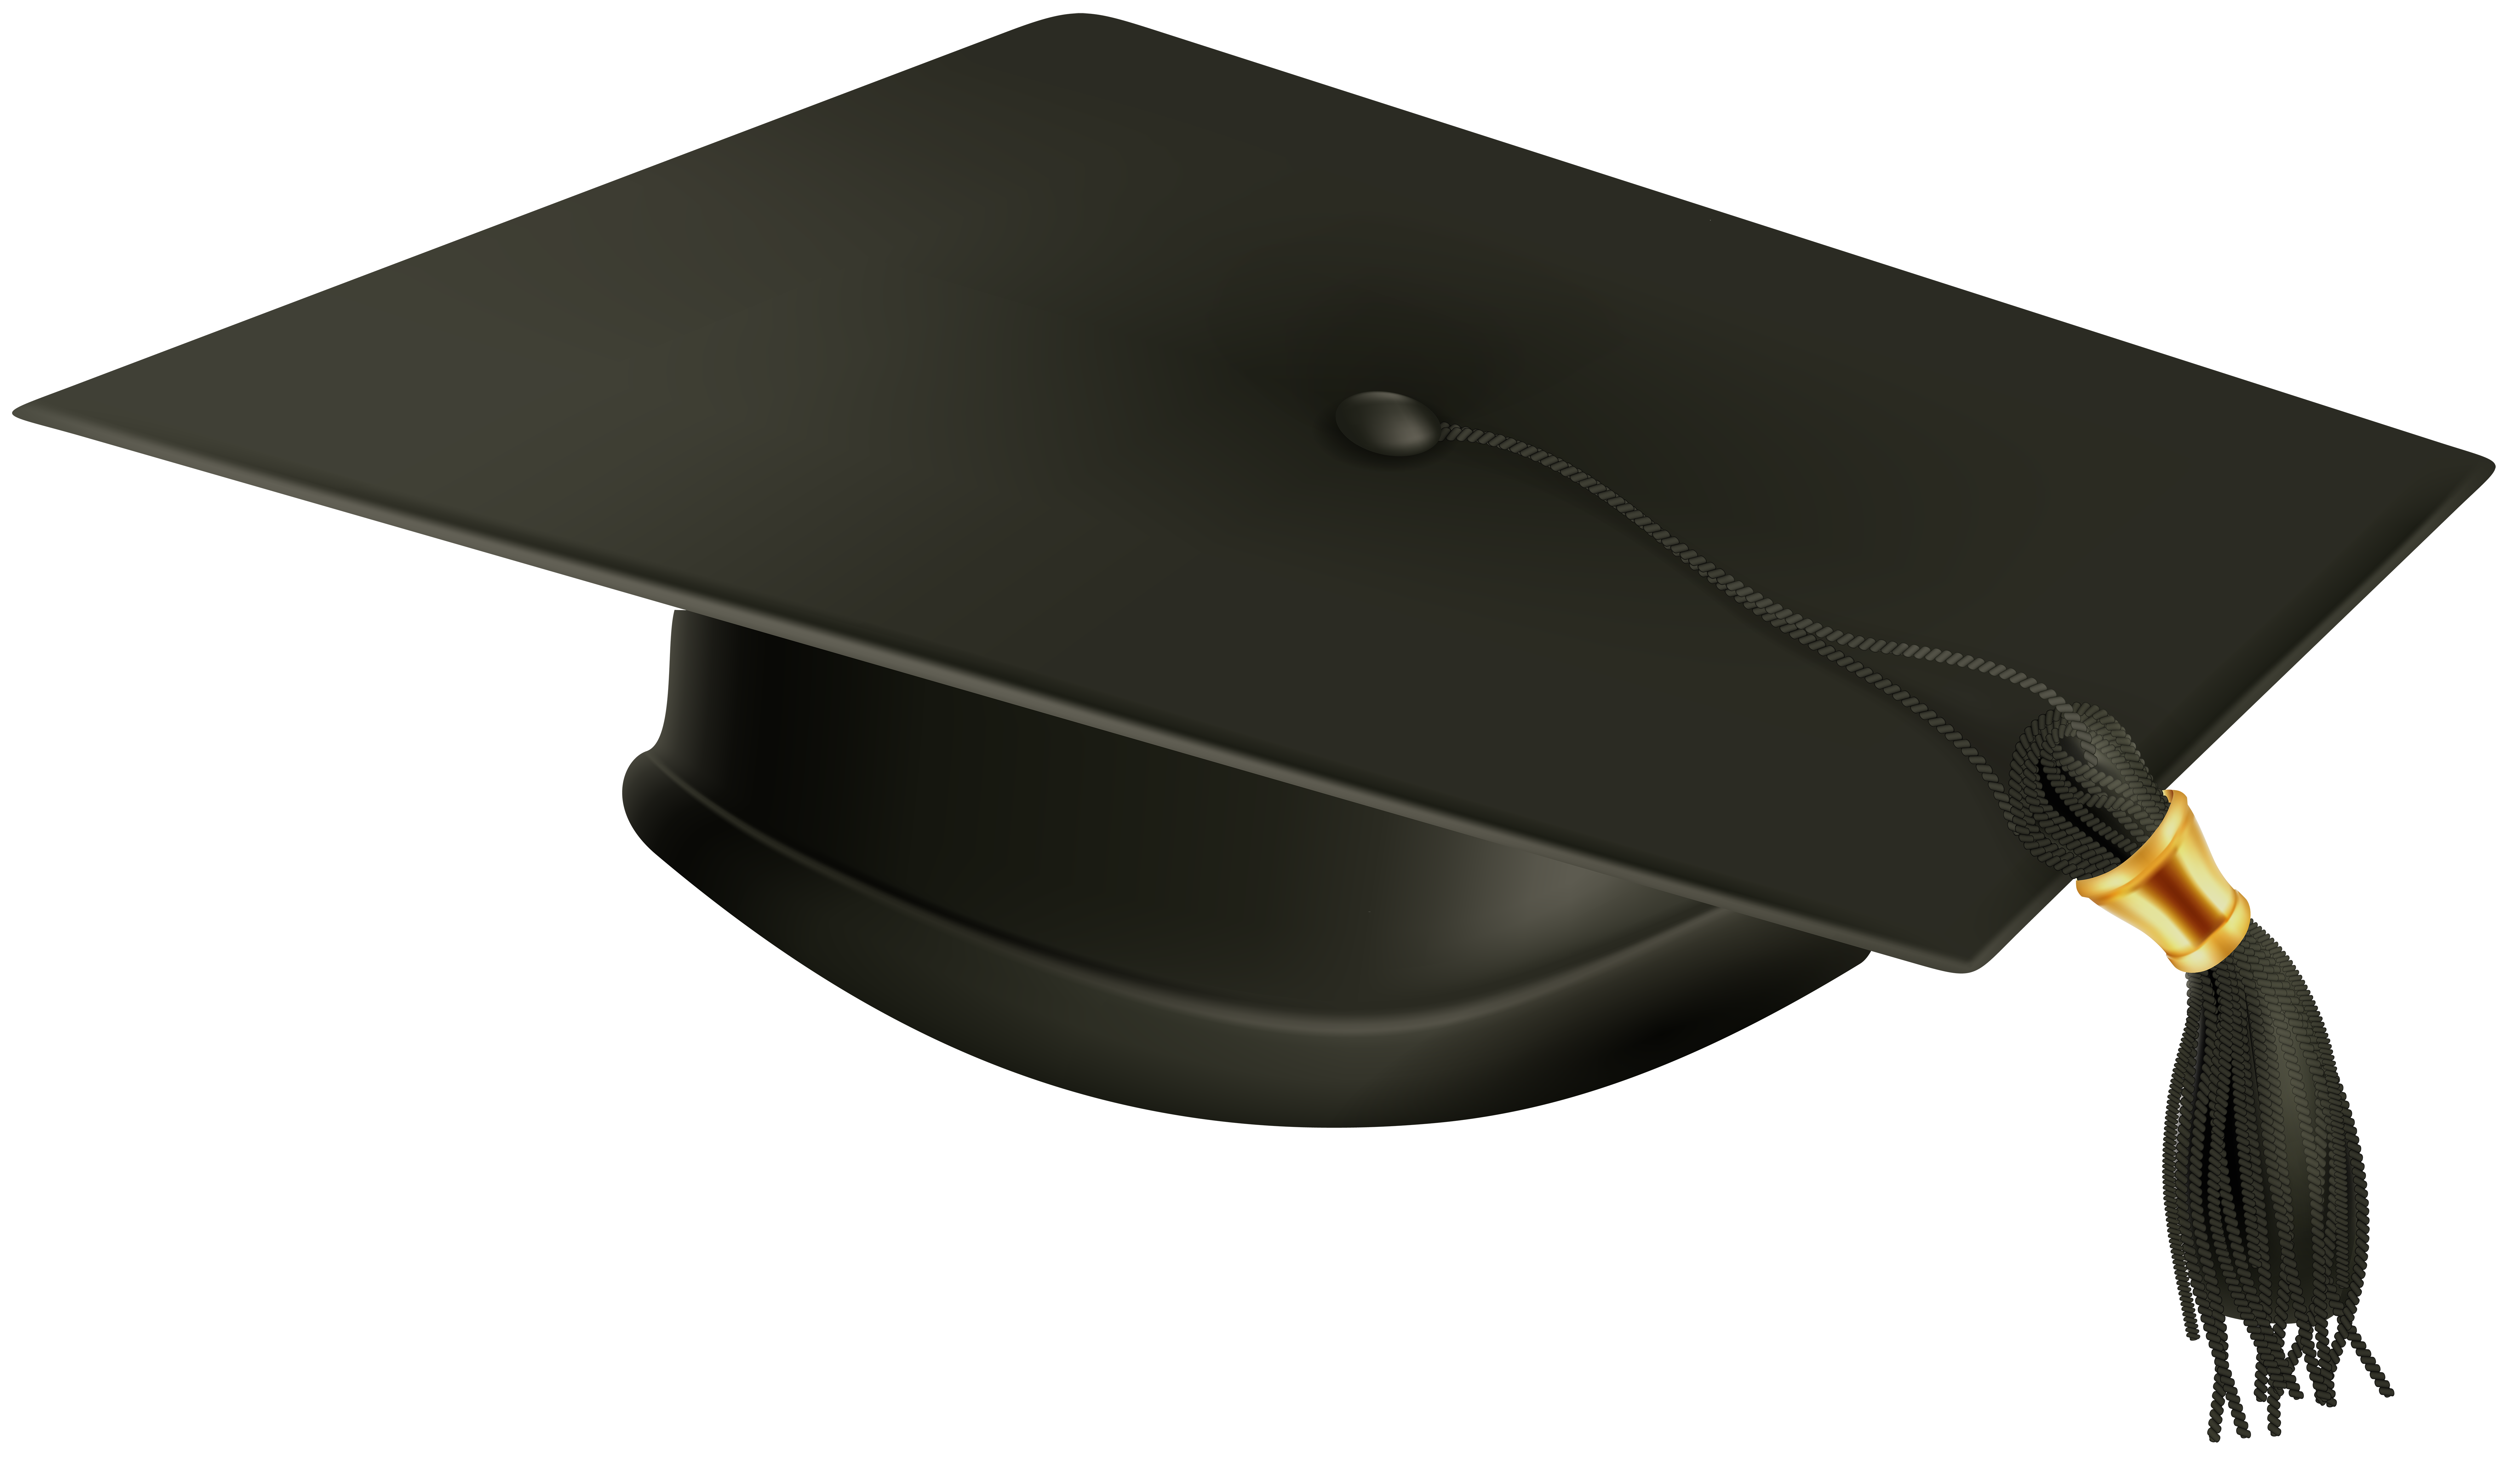 12++ Graduation caps clipart black and white information